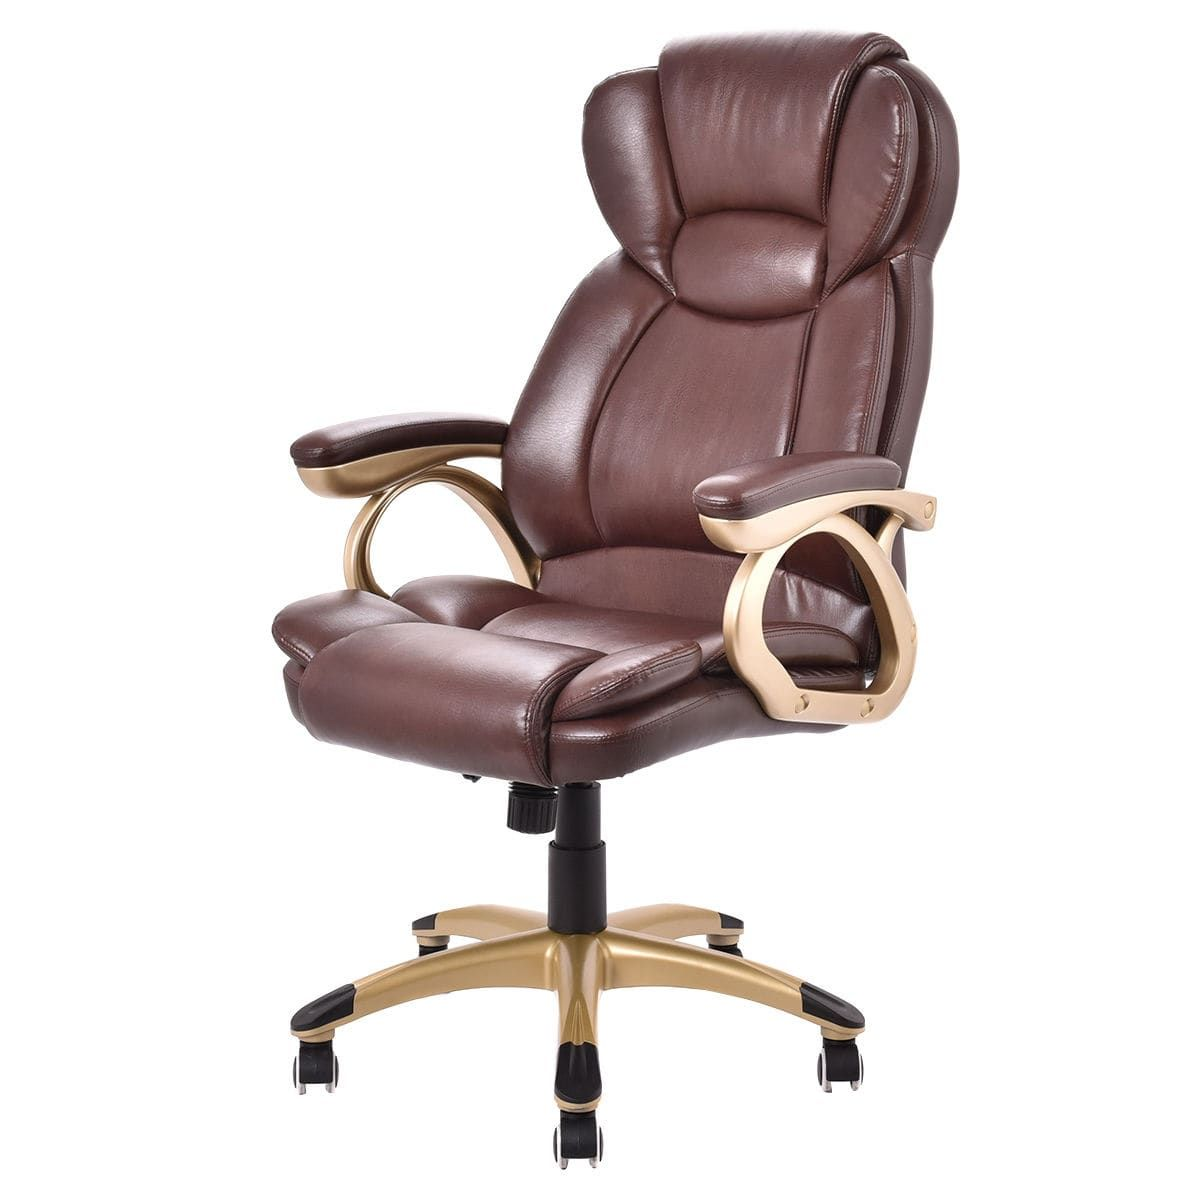 costway ergonomic office chair pu leather high back executive